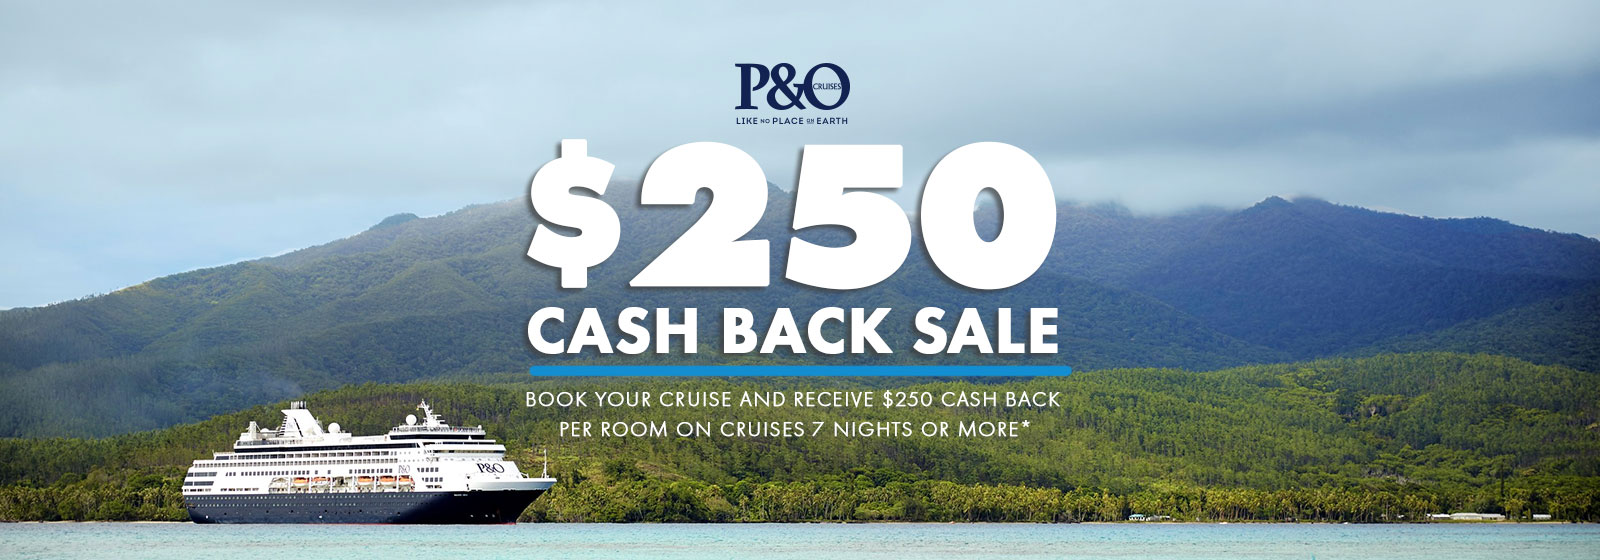 P&O Cash Back Sale